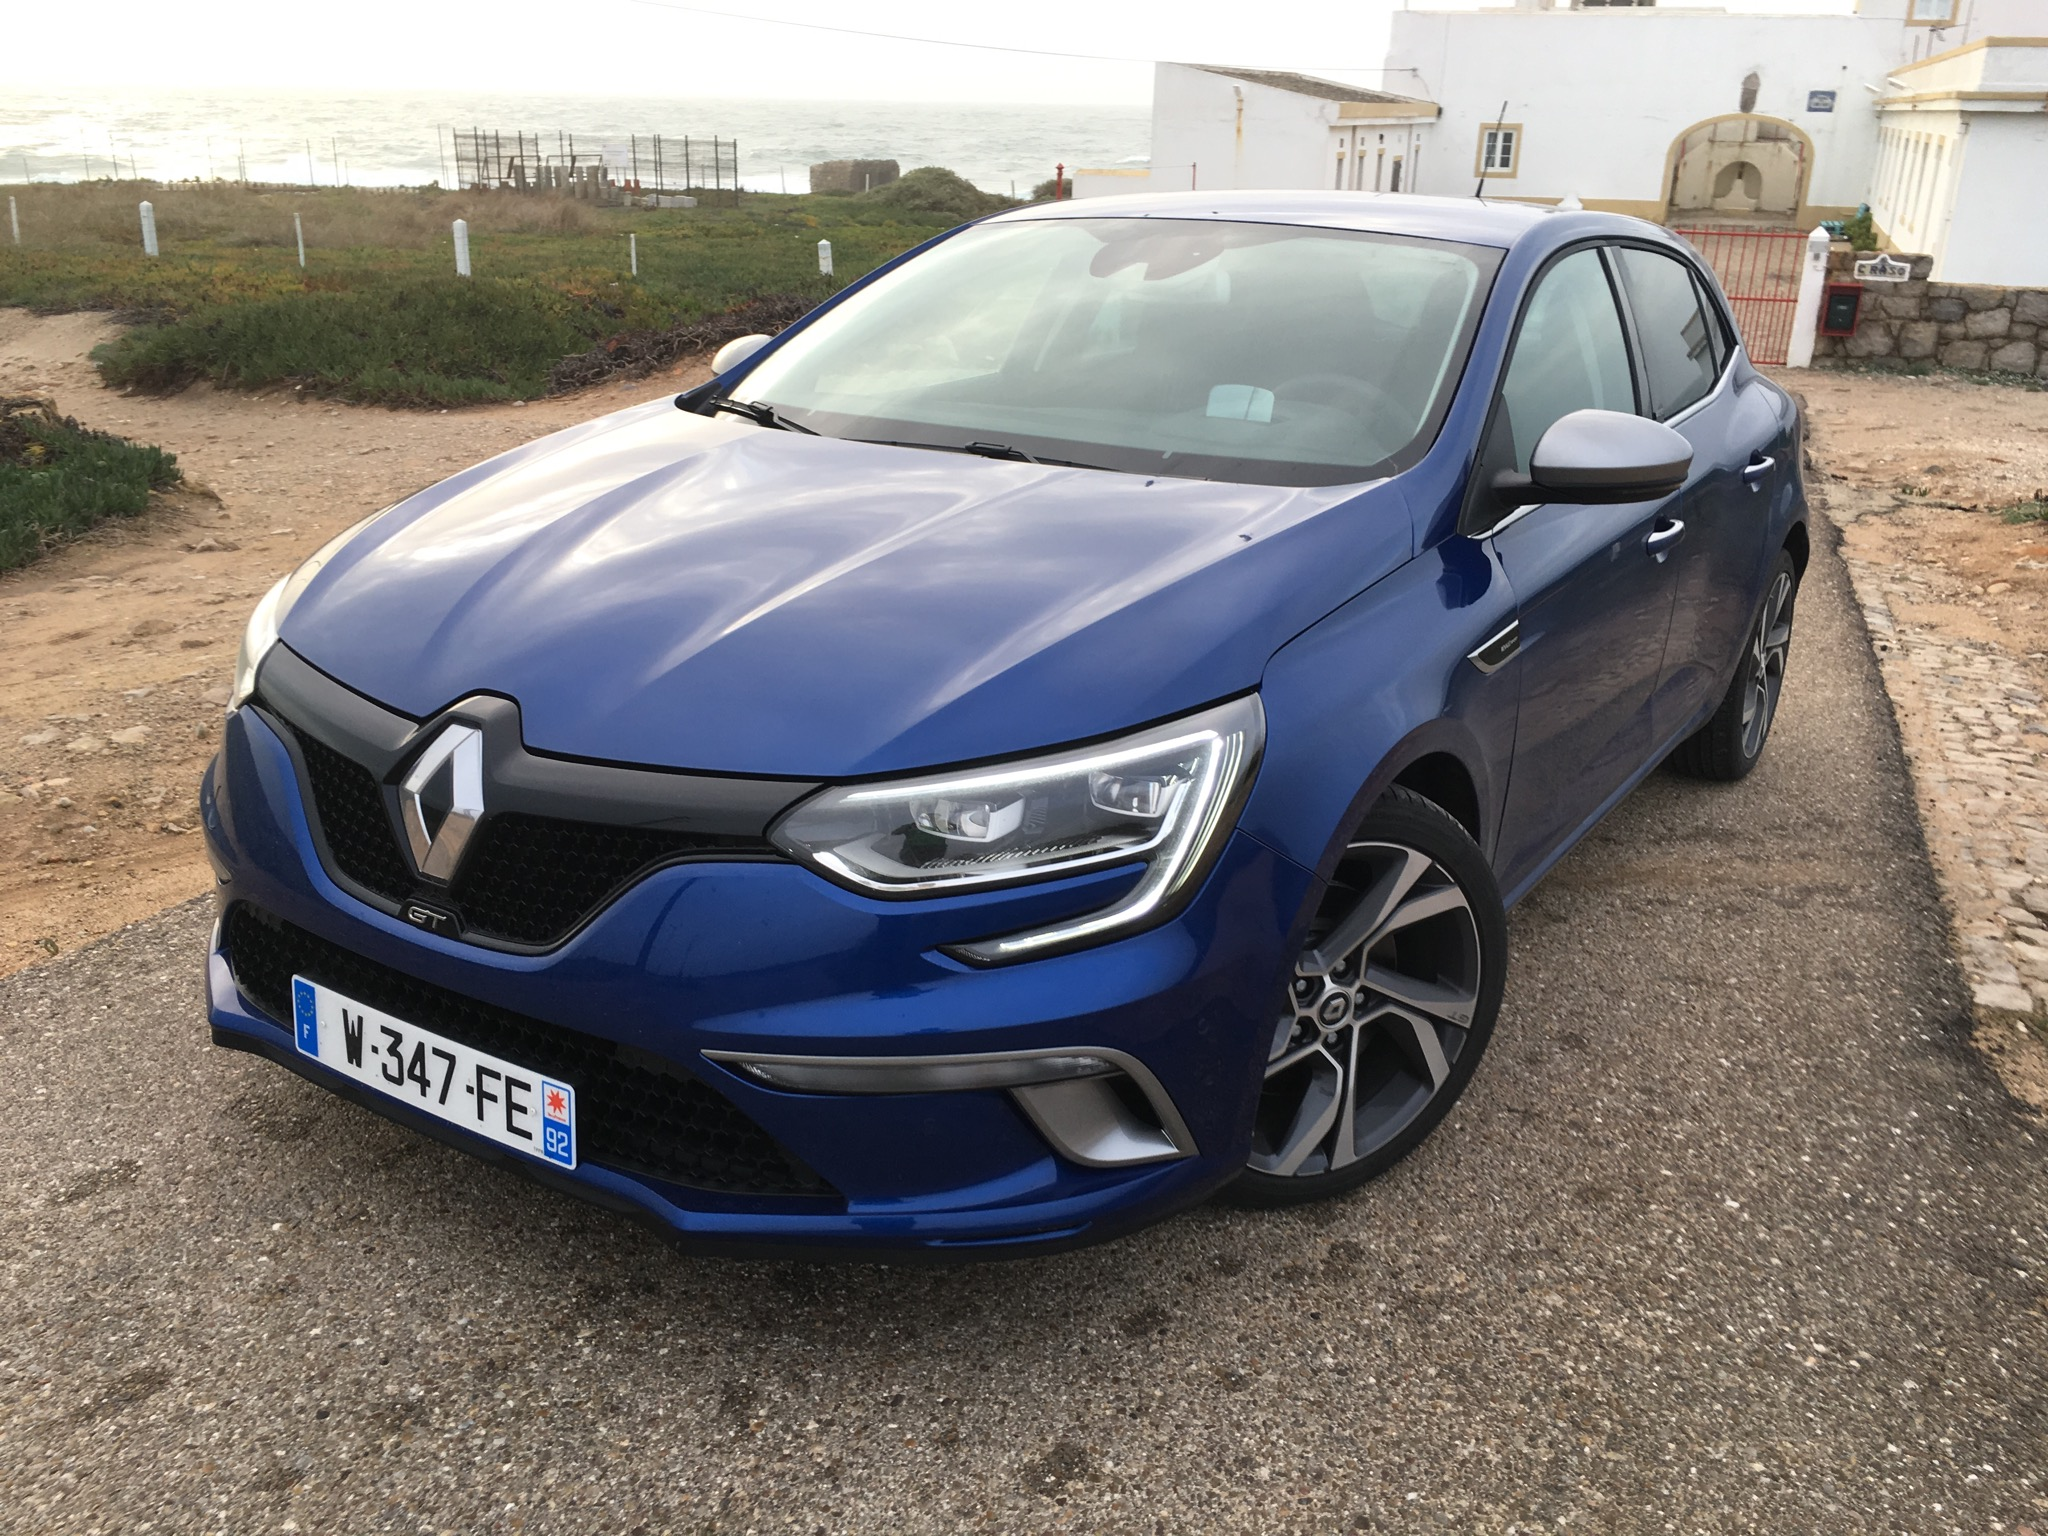 the stunning new renault megane 2016 hatchback review 6567 cars performance reviews and. Black Bedroom Furniture Sets. Home Design Ideas